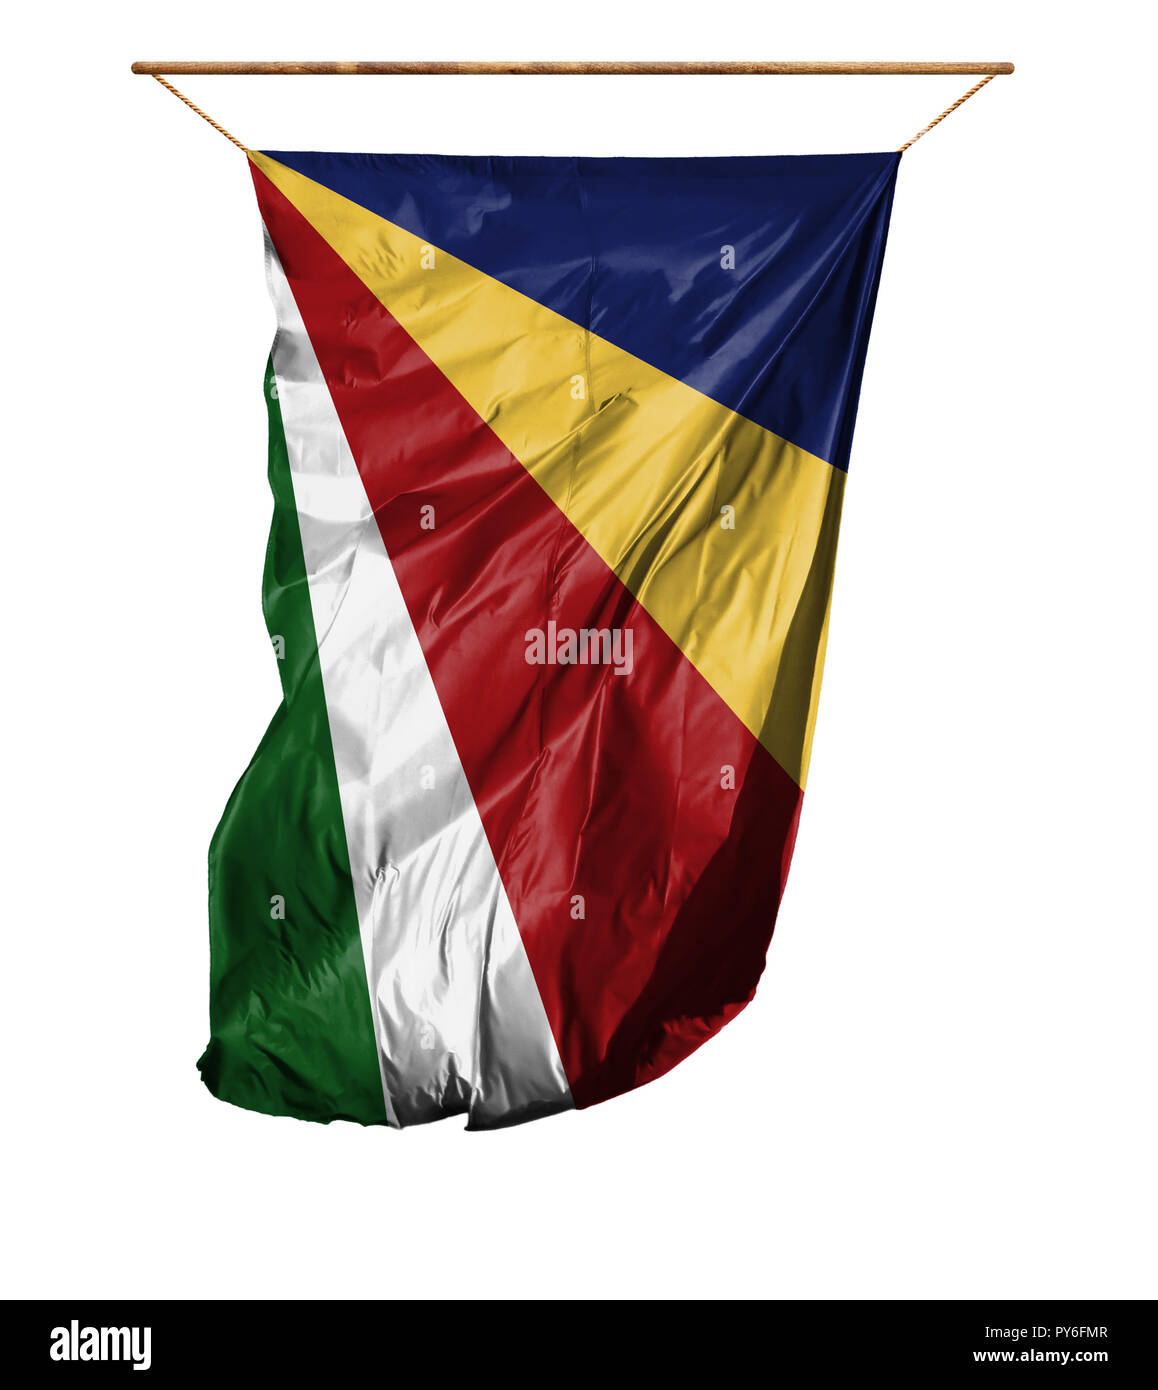 Flag of Seychelles. Vertical flag.Isolated on a white background. - Stock Image